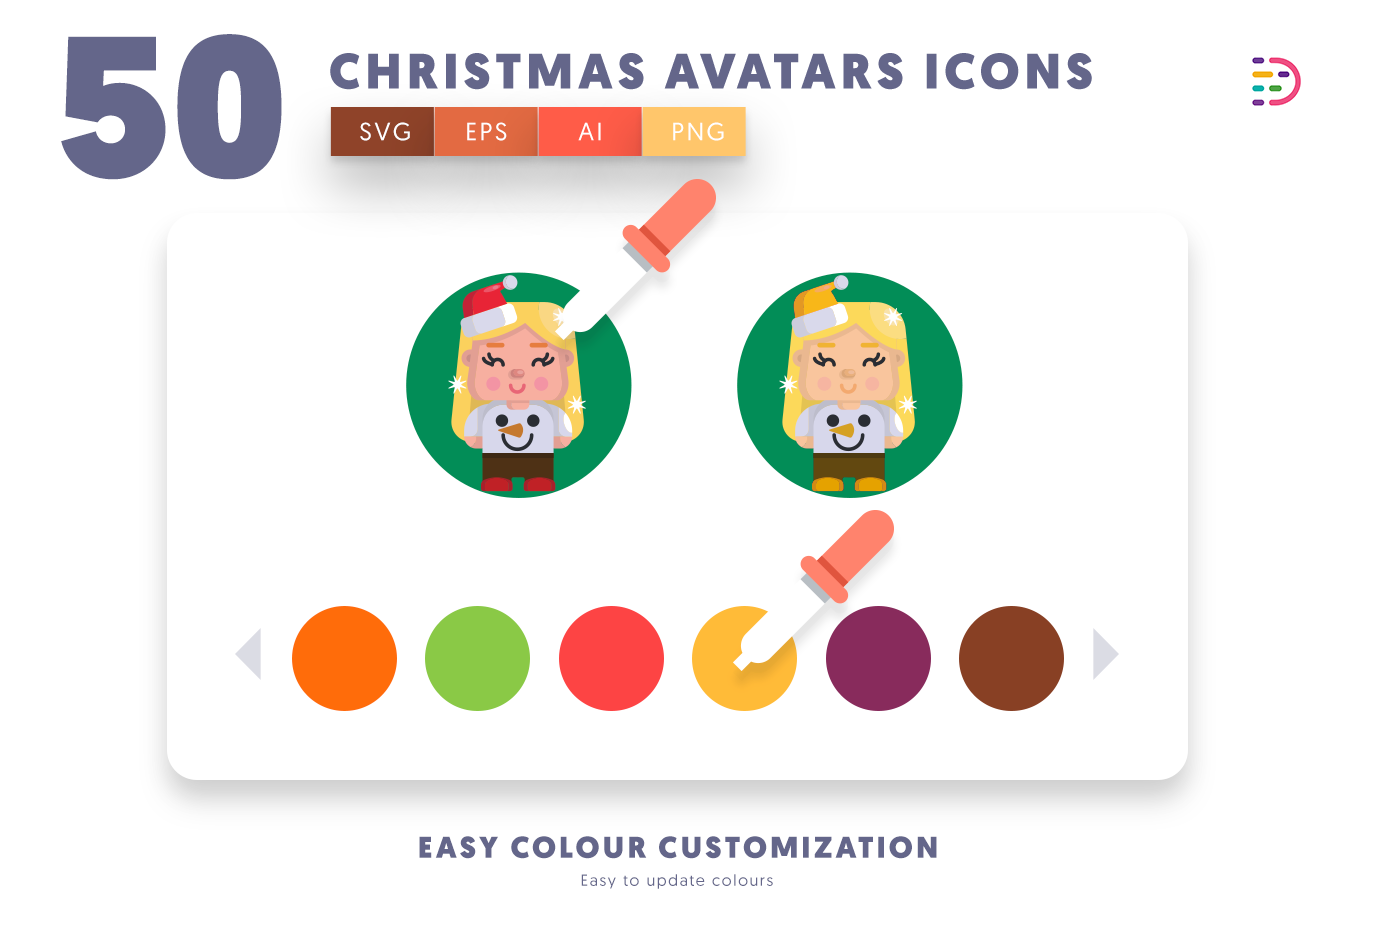 Customizable and vector 50 Christmas Avatars Icons